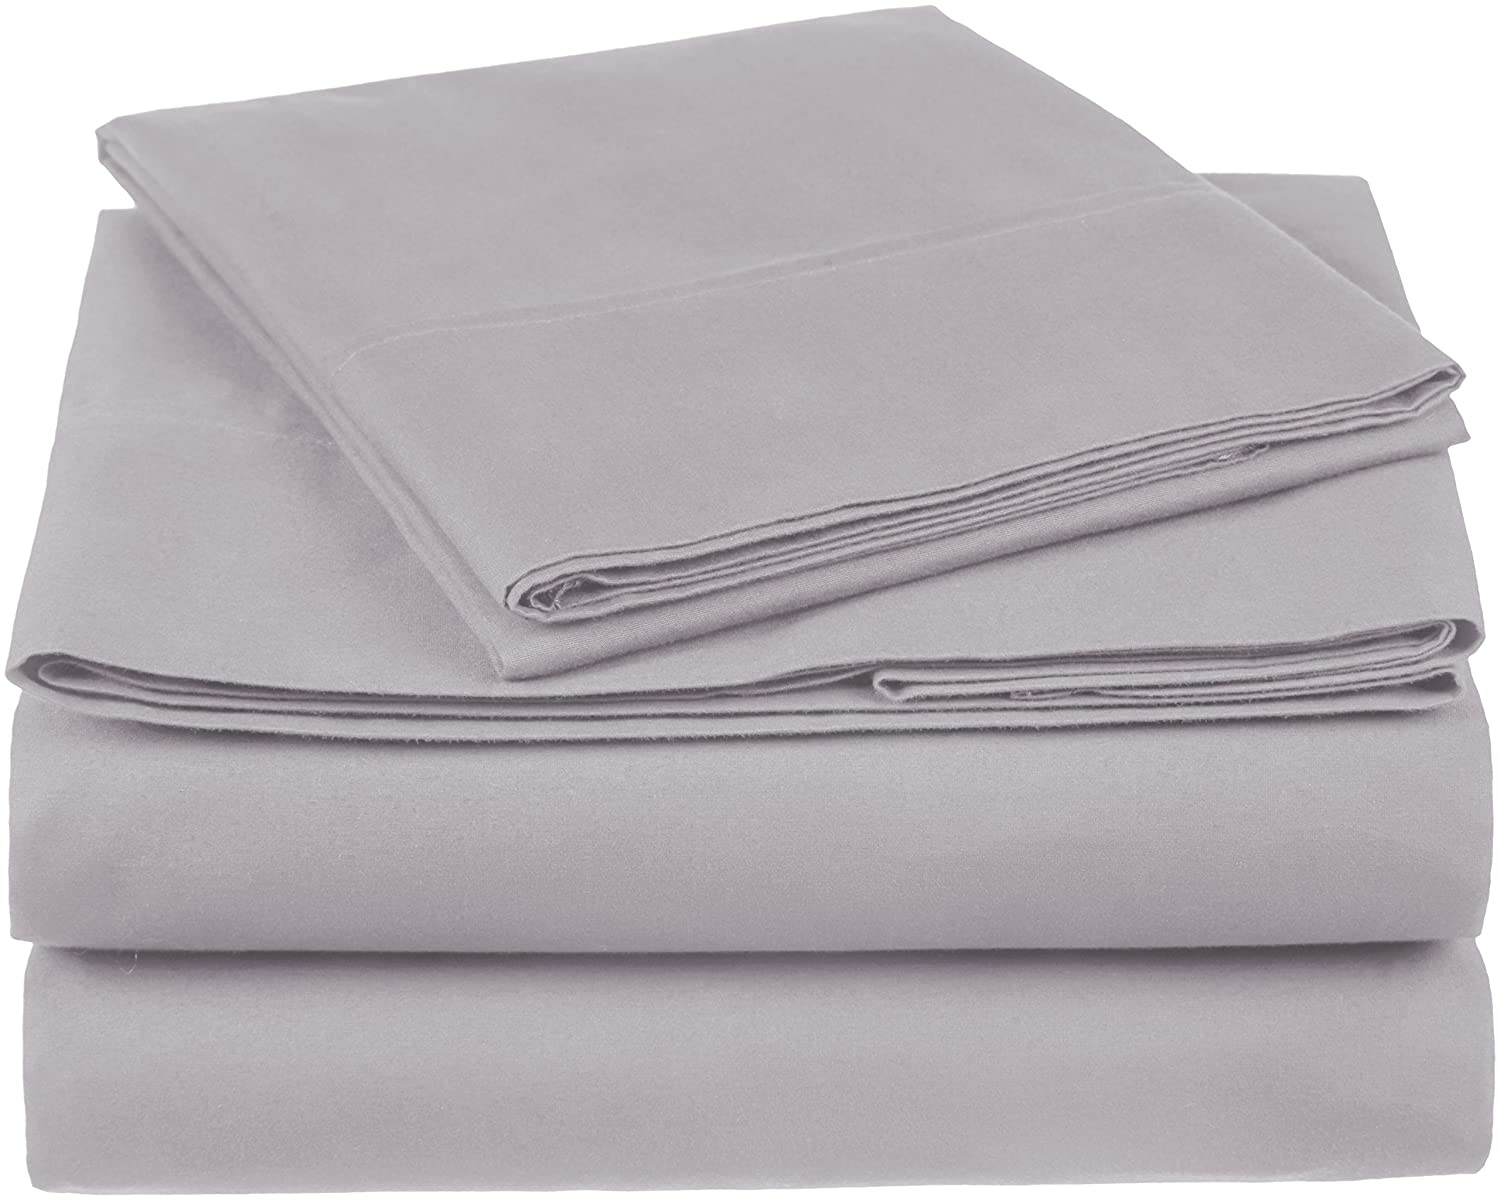 Pinzon Organic Cotton Sheet Set - Twin XL, Dove Grey